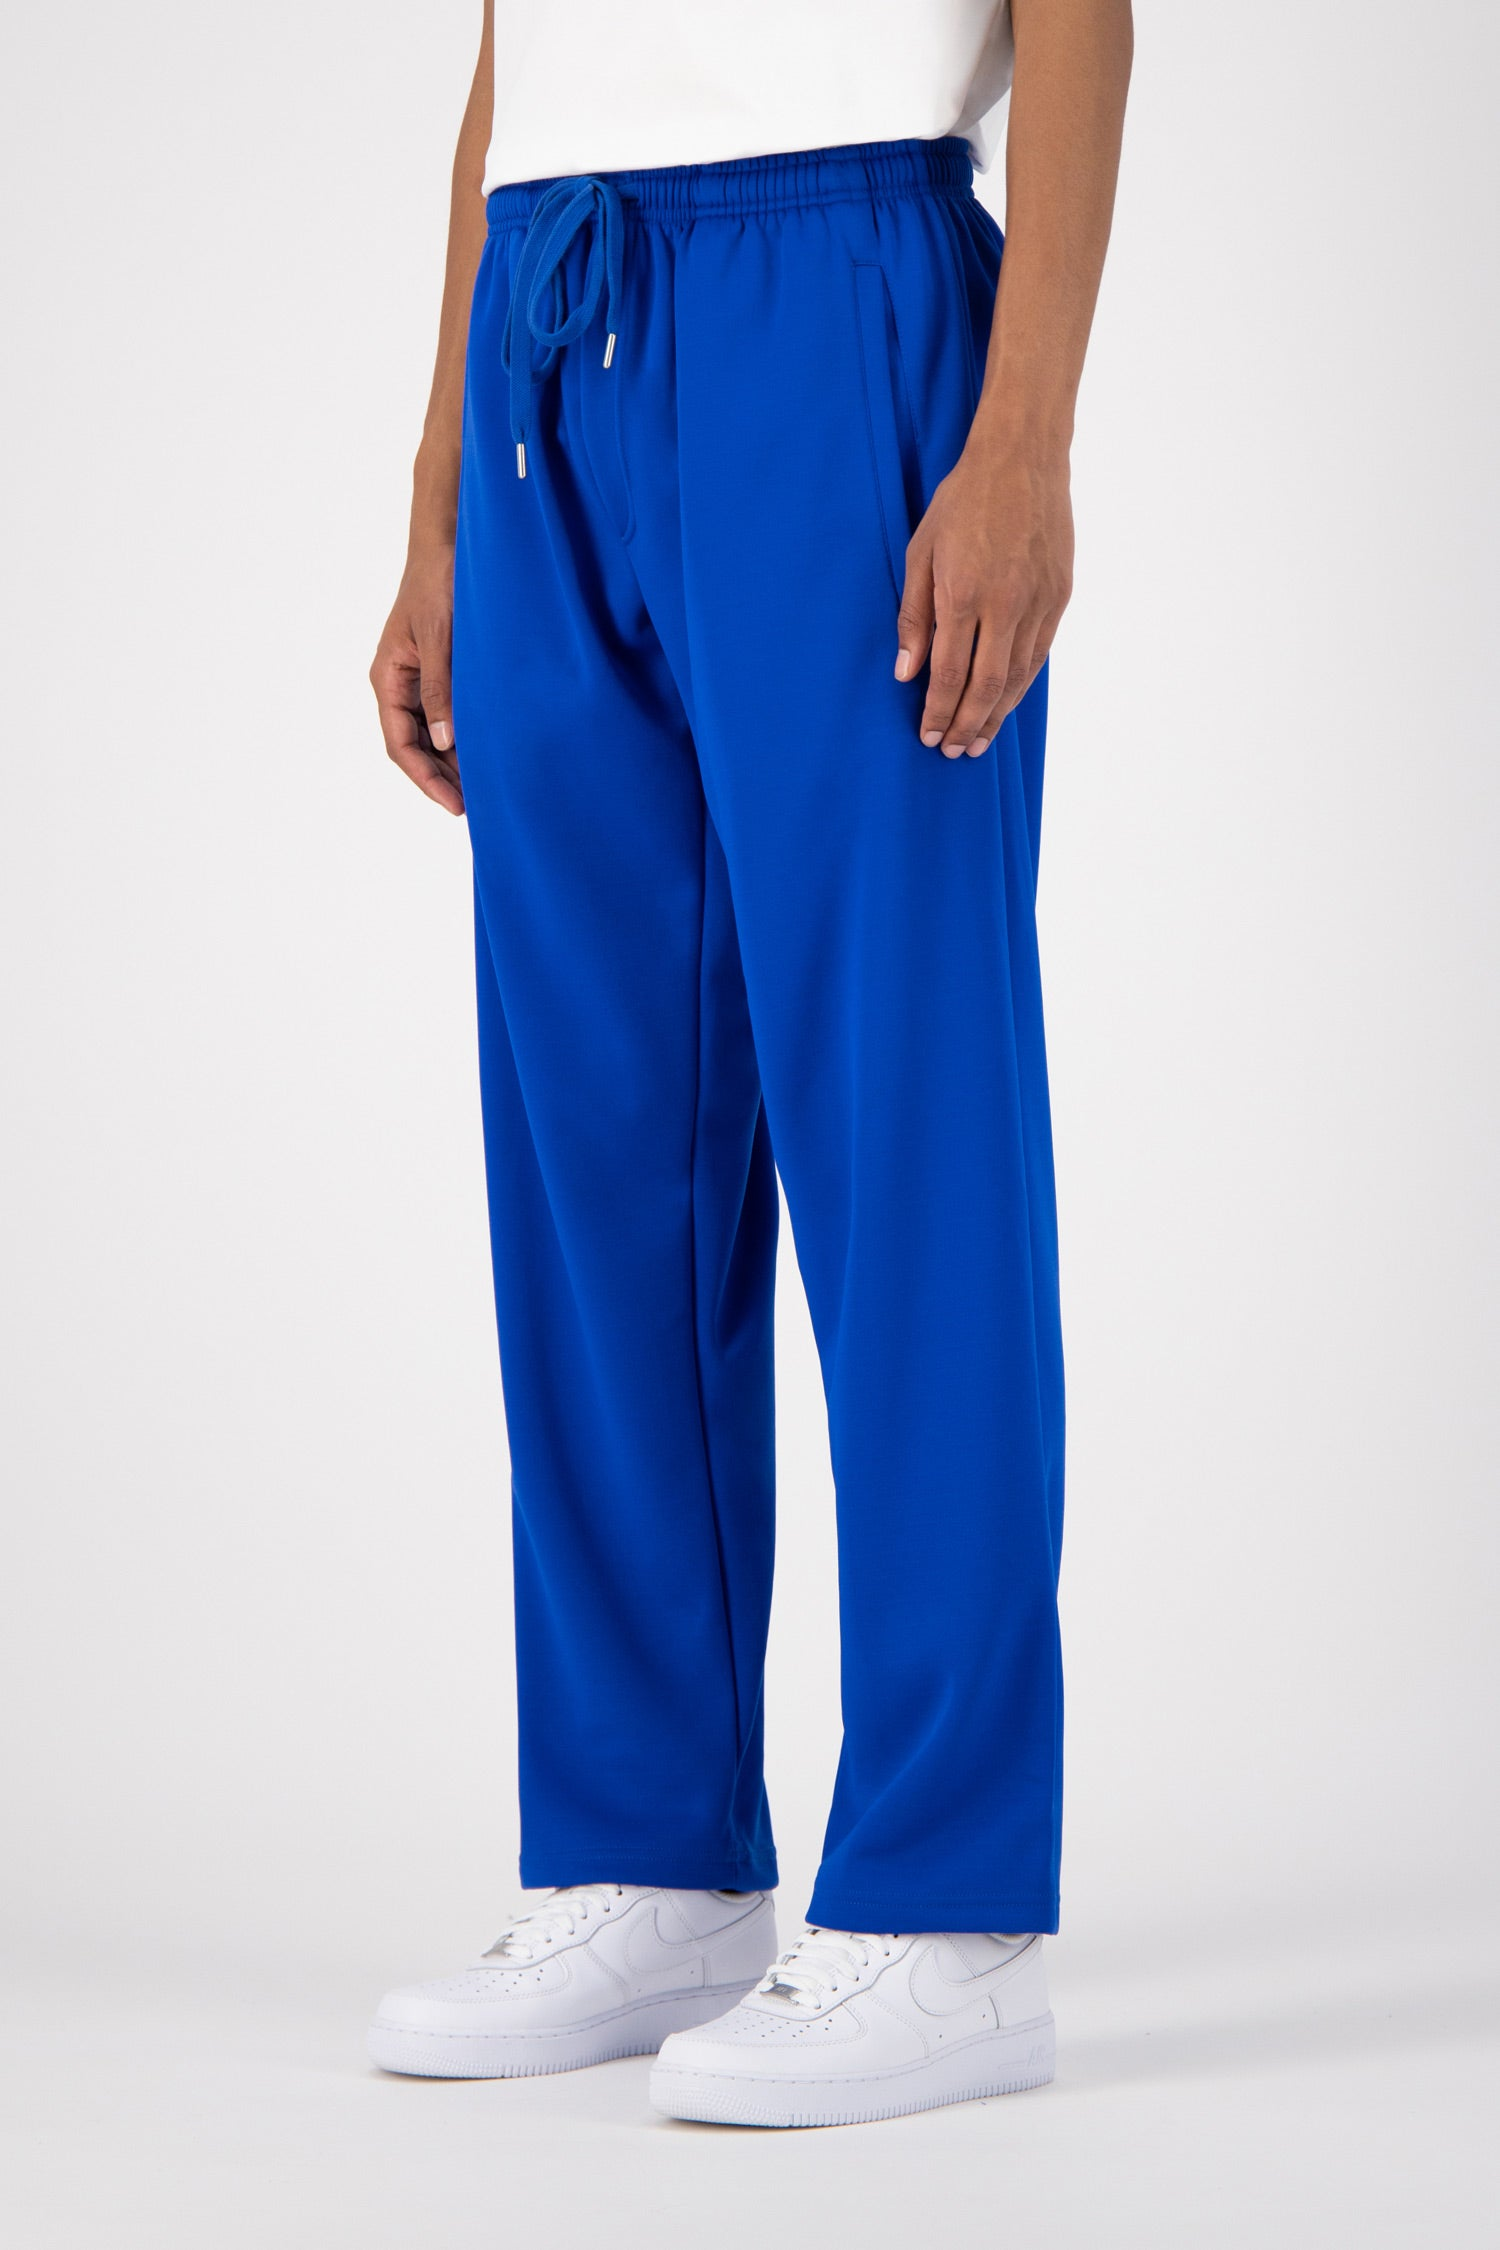 Jasper Pants - Royal Blue